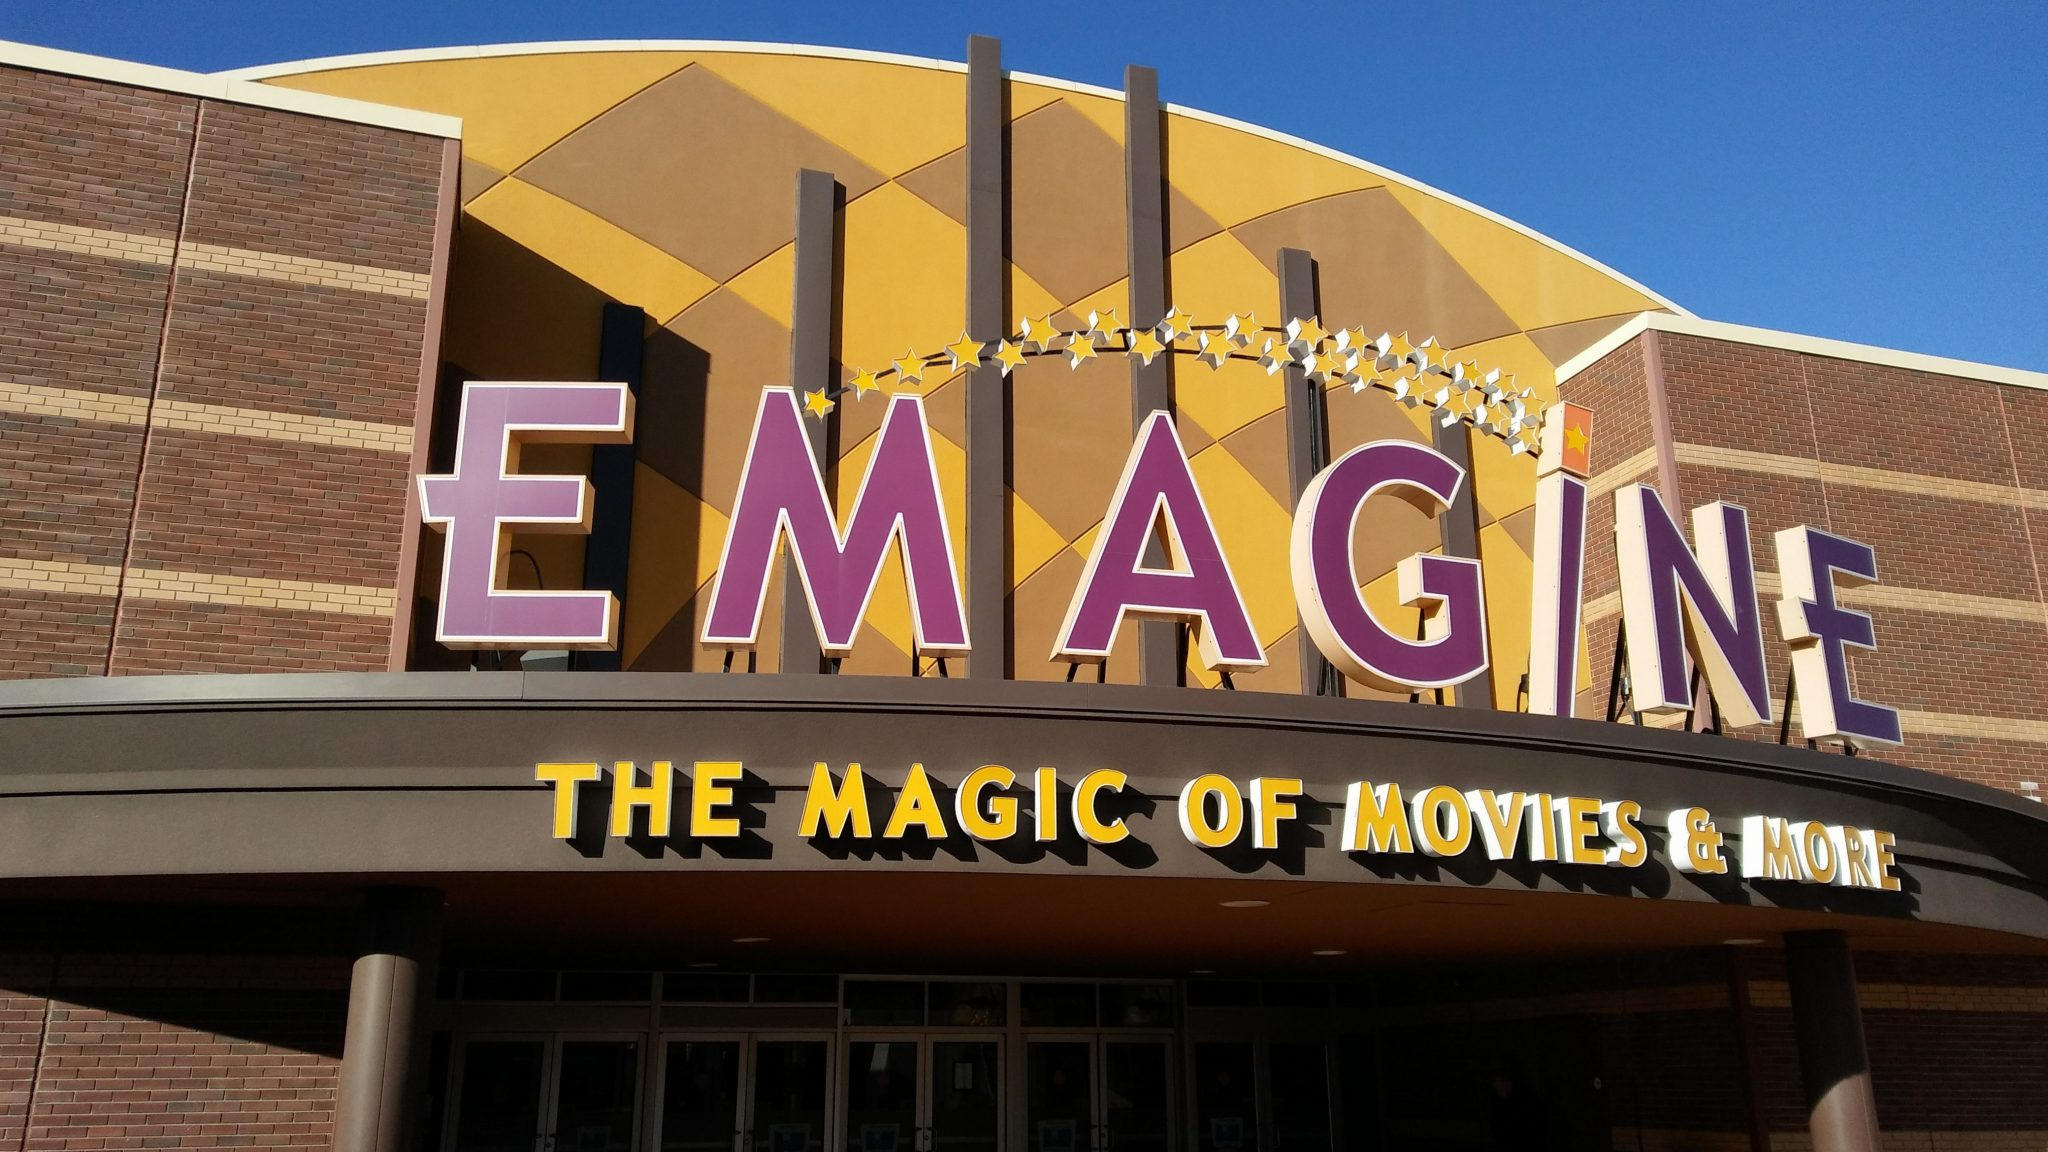 Emagine Theater Entrance